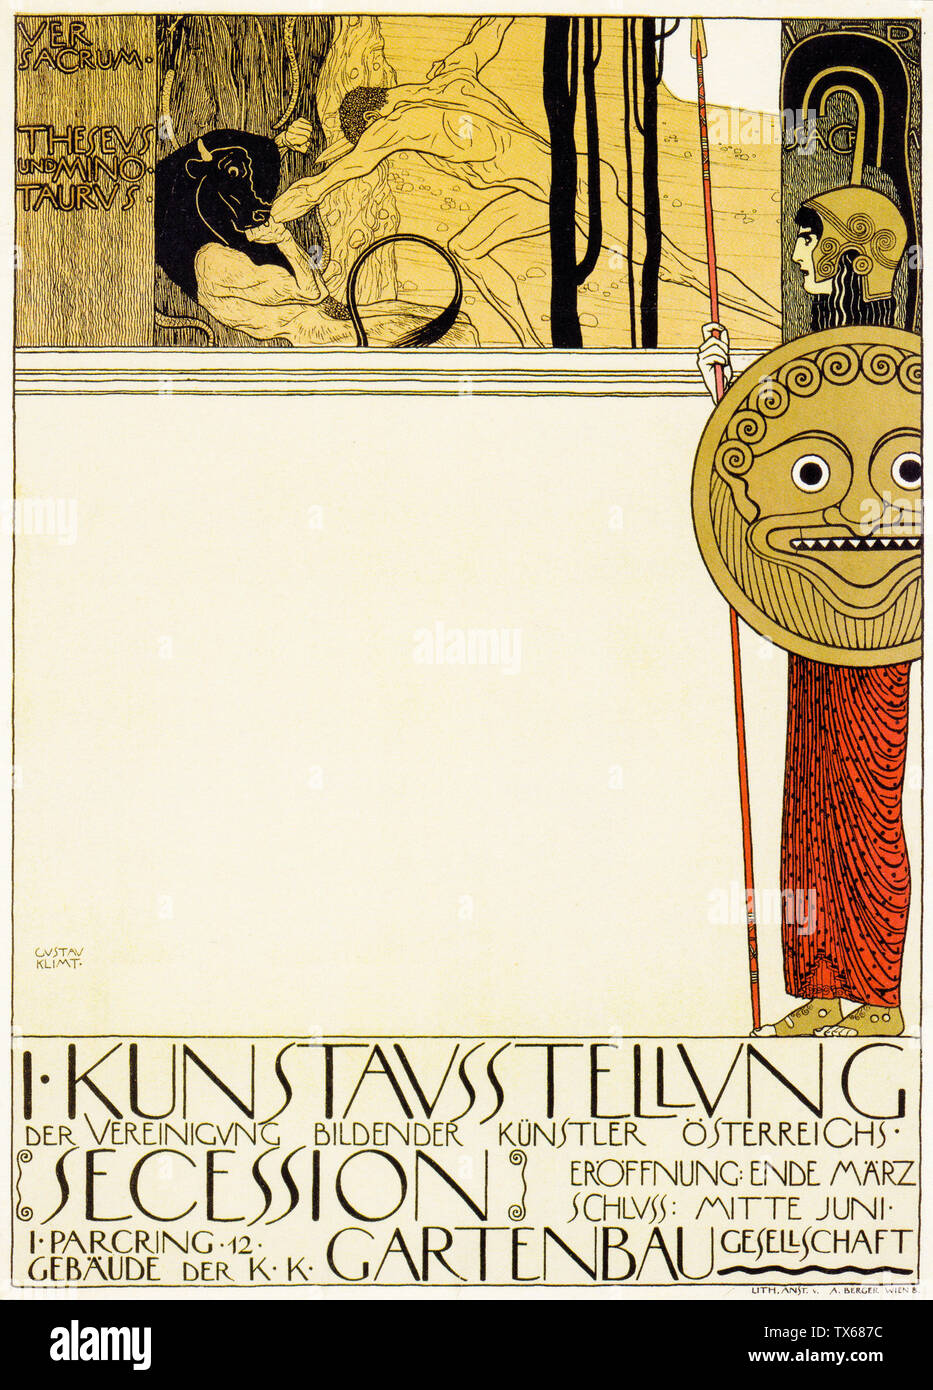 Gustav Klimt First Exhibition Poster Of The Vienna Secession Censored Version Poster 1898 Stock Photo Alamy